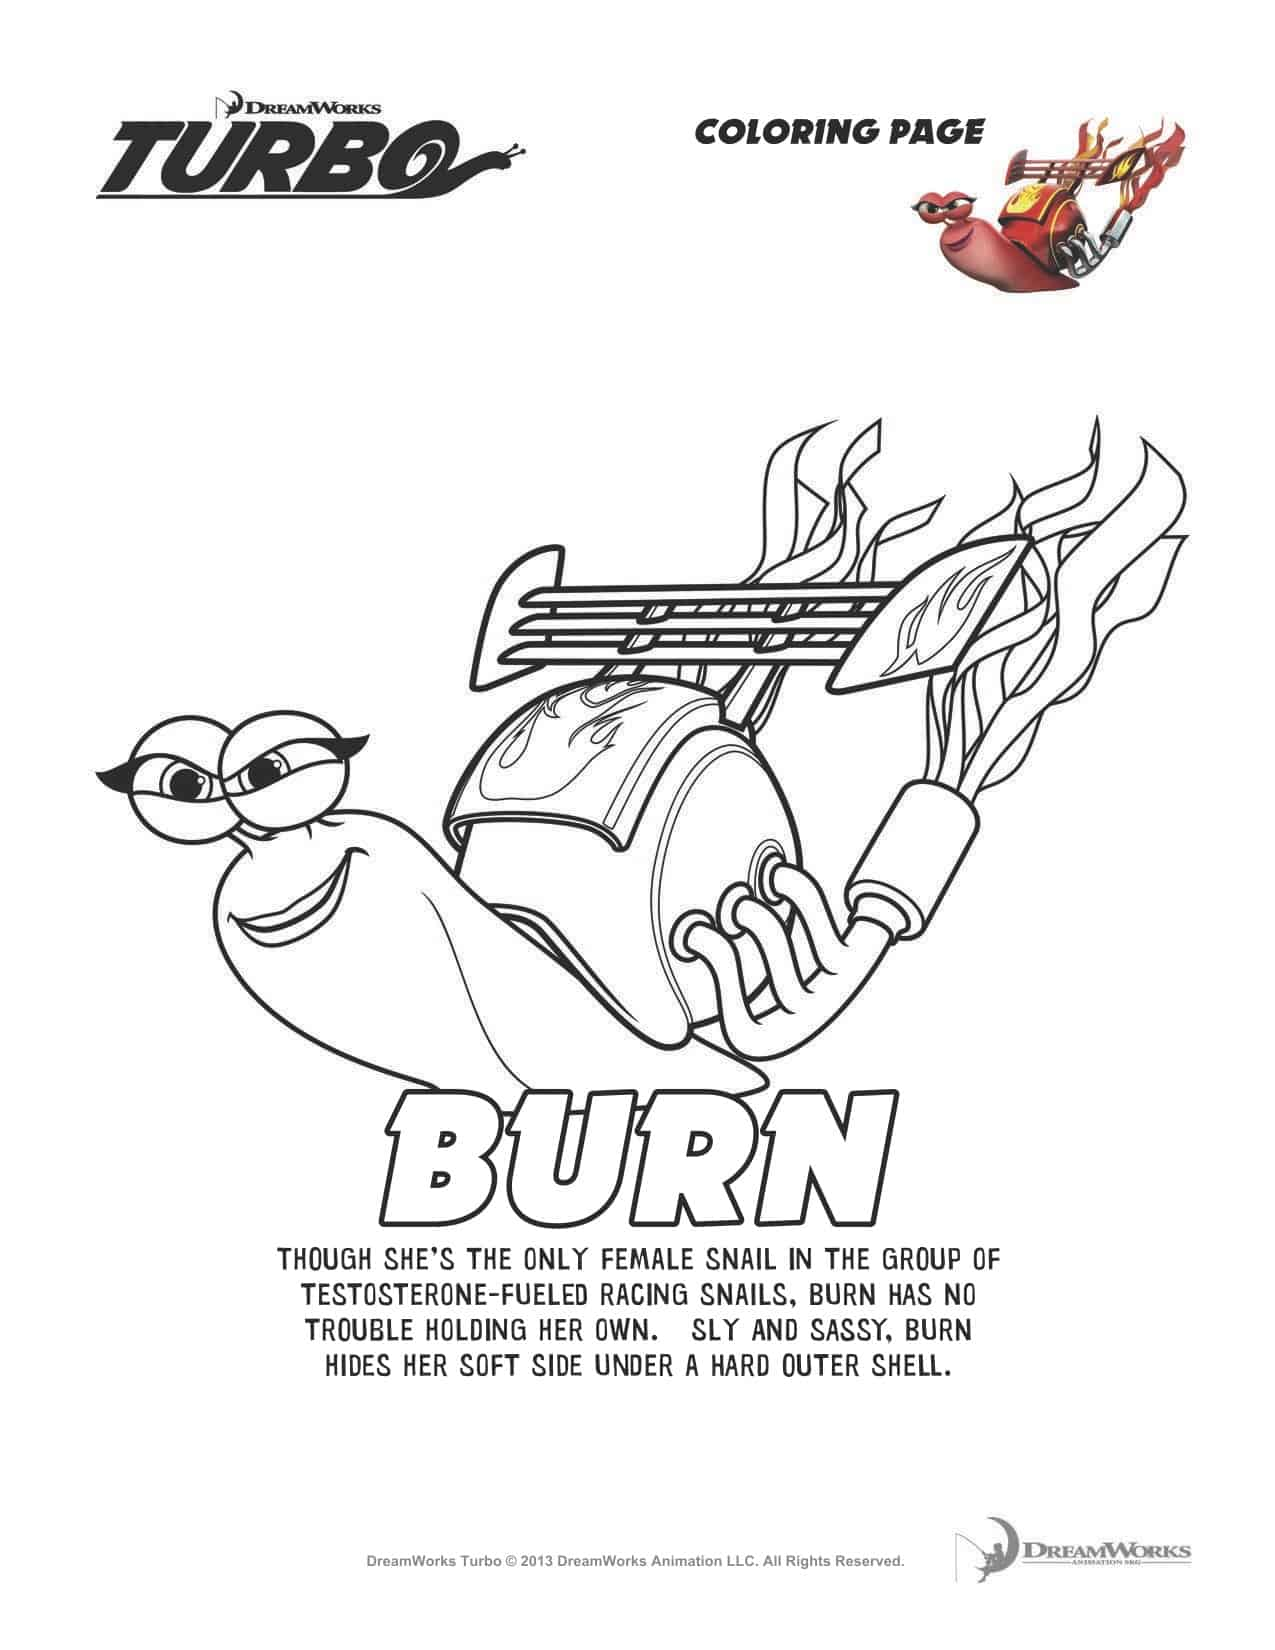 Turbofastfun Free Turbo Movie Printable Coloring Pages Plus Turbo Now Available In Stores